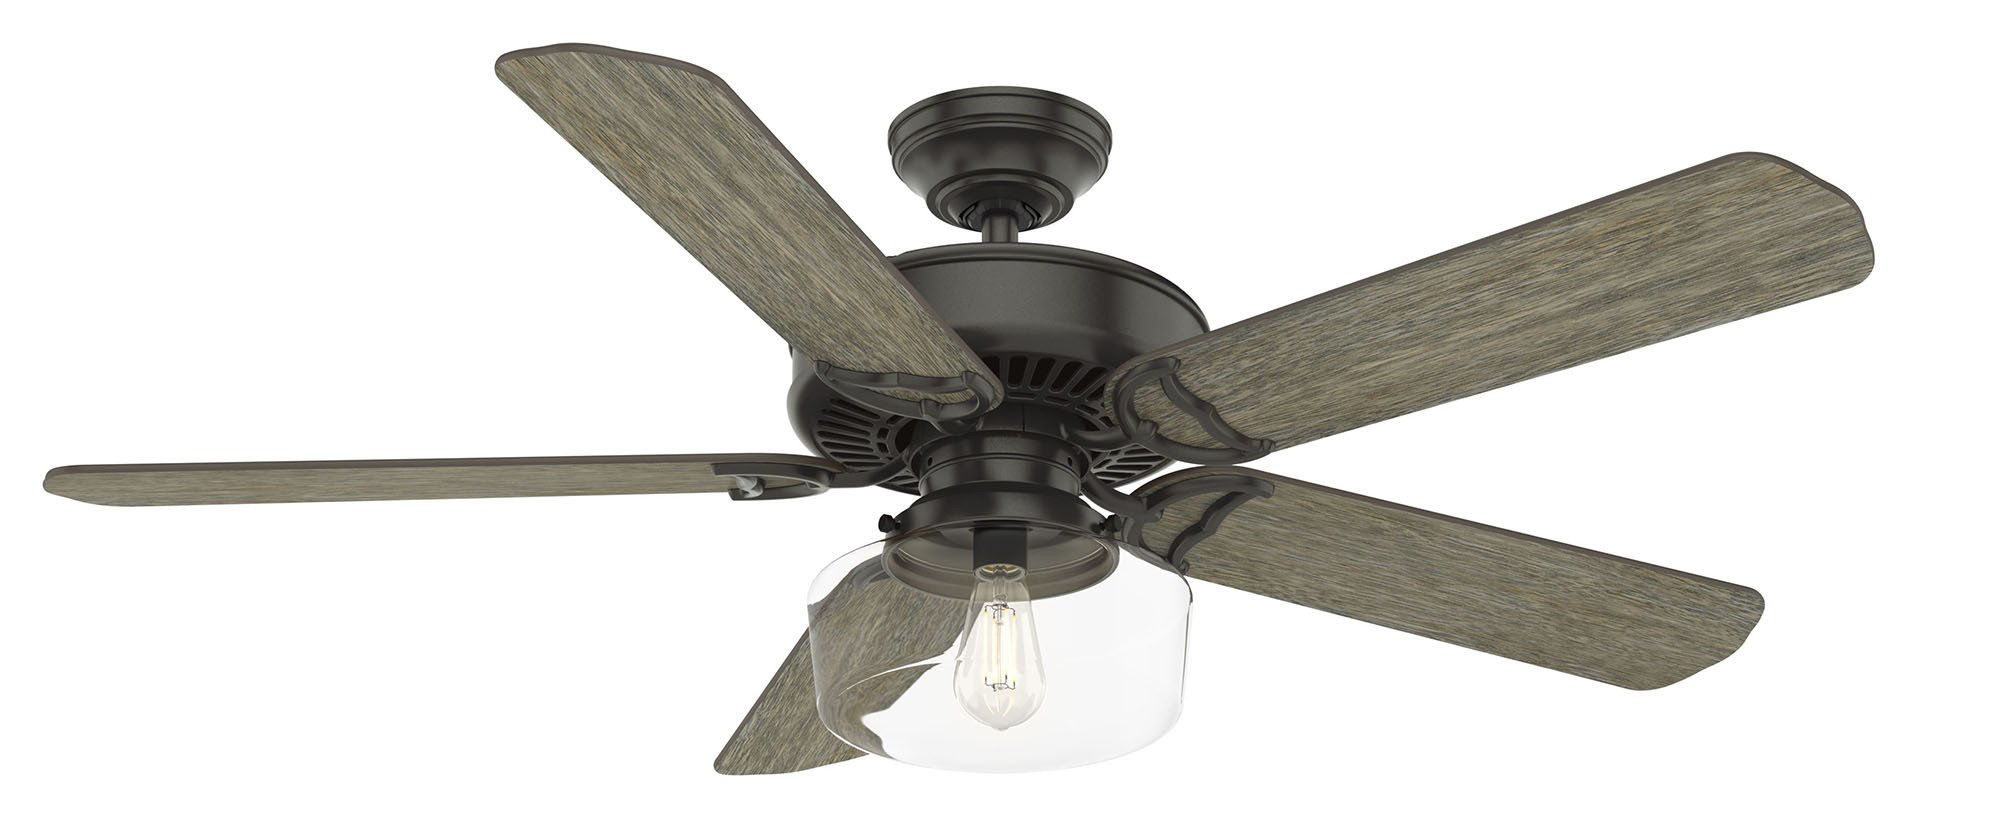 Master Bedroom Ceiling Fans Inspirational Panama Sun with Led Light 54 Inch Ceiling Fan